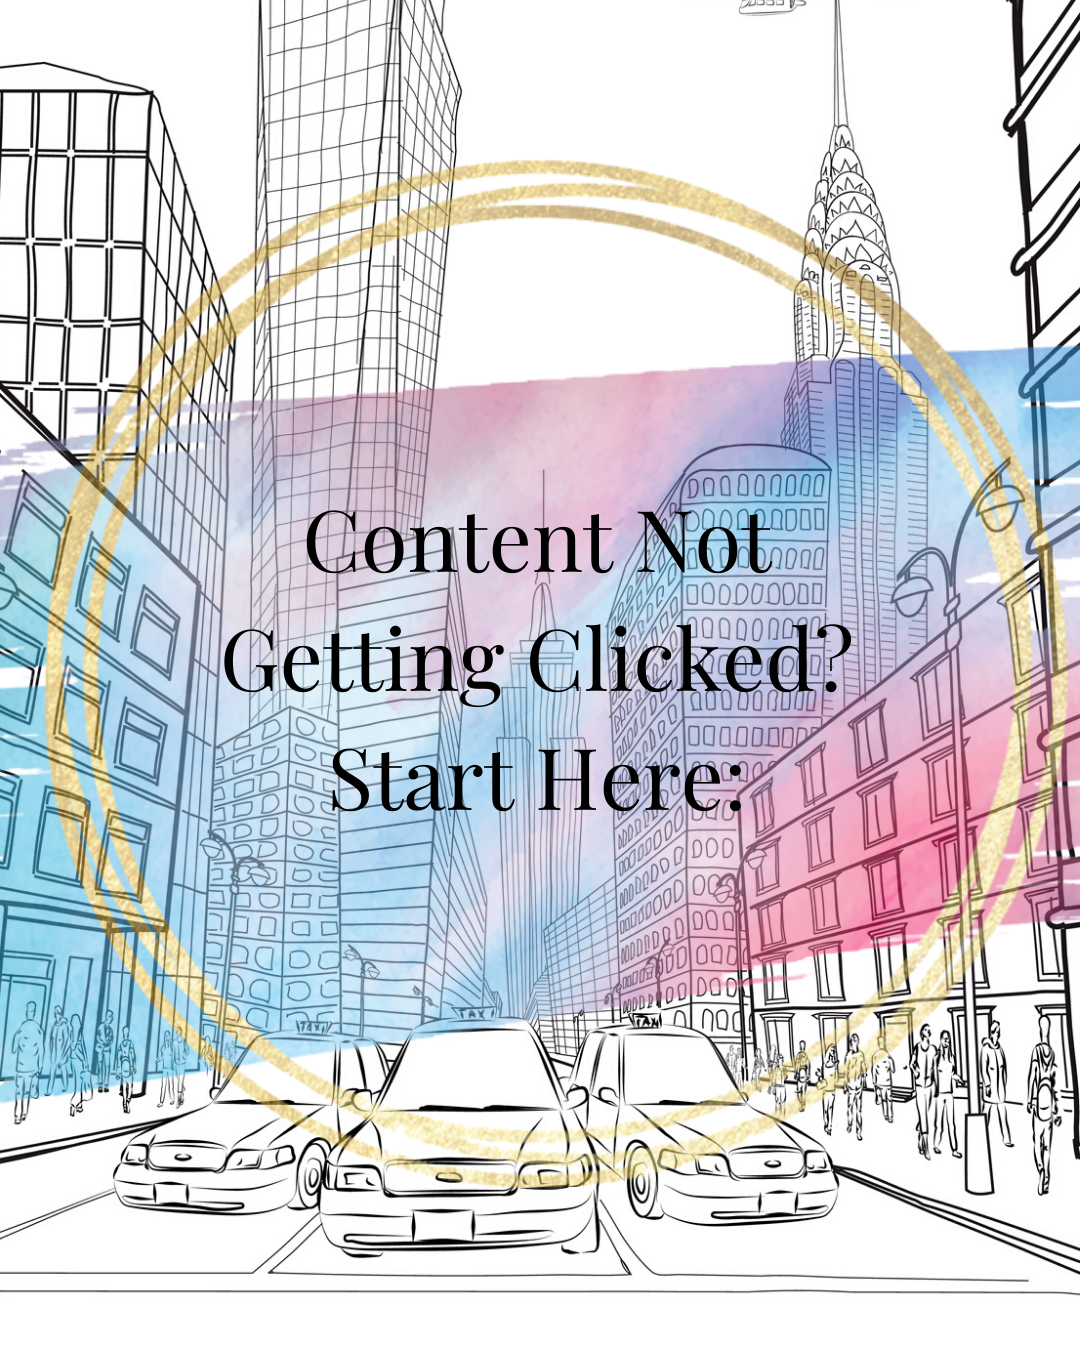 Want Ultra Visible Content? You Need This via @saraharrow